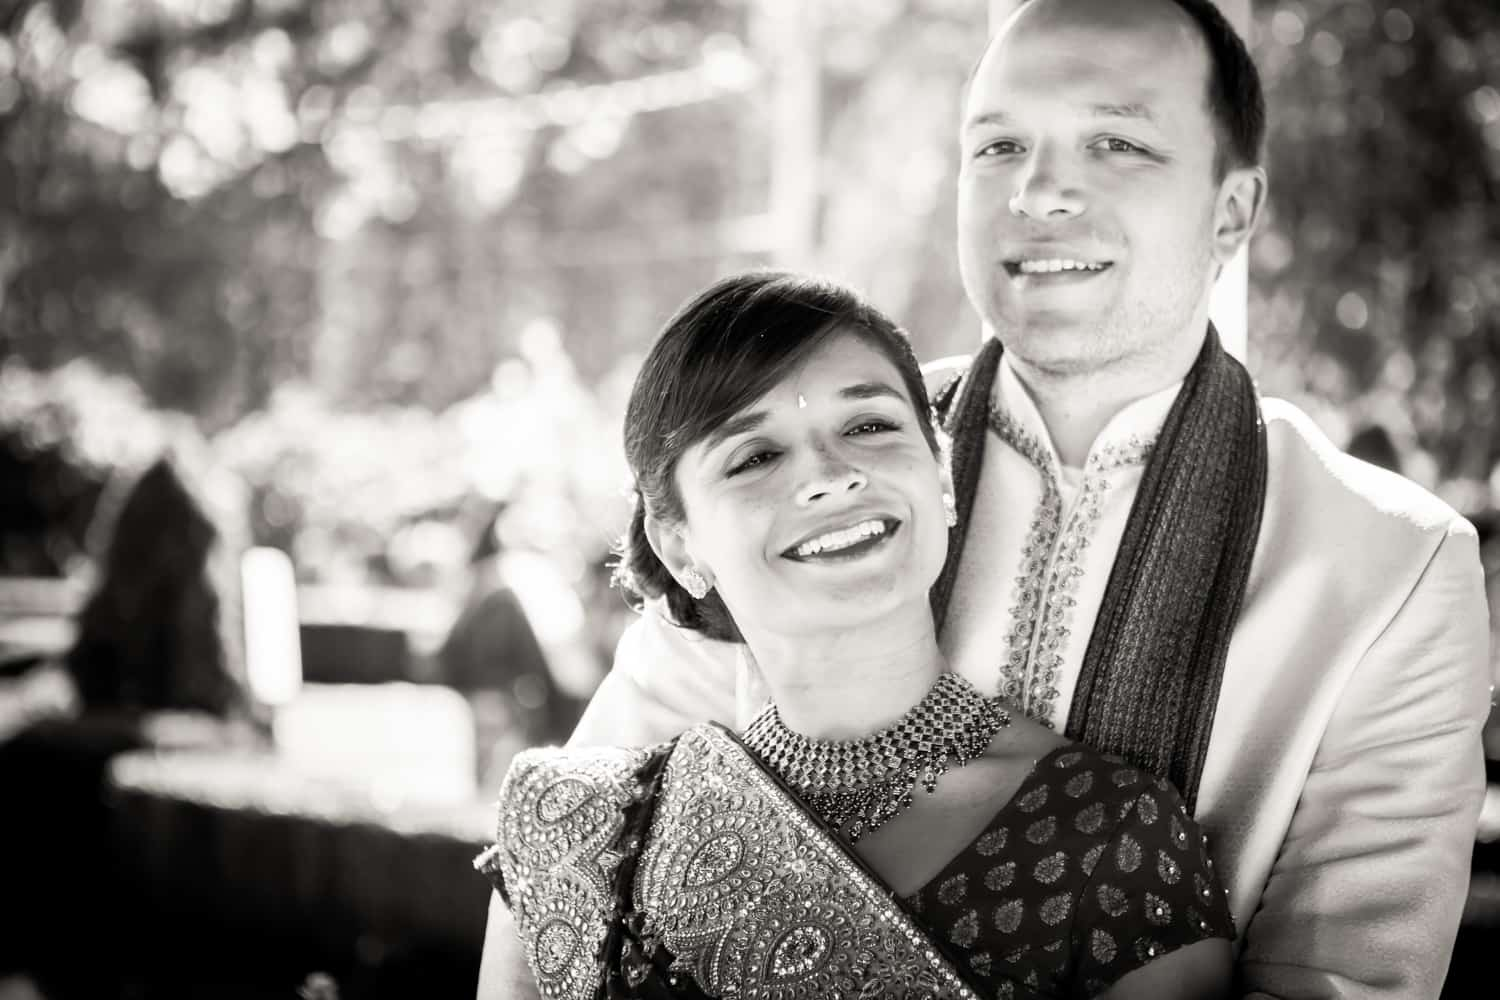 Black and white photo of bride and groom wearing traditional wedding attire at an East Wind Inn wedding